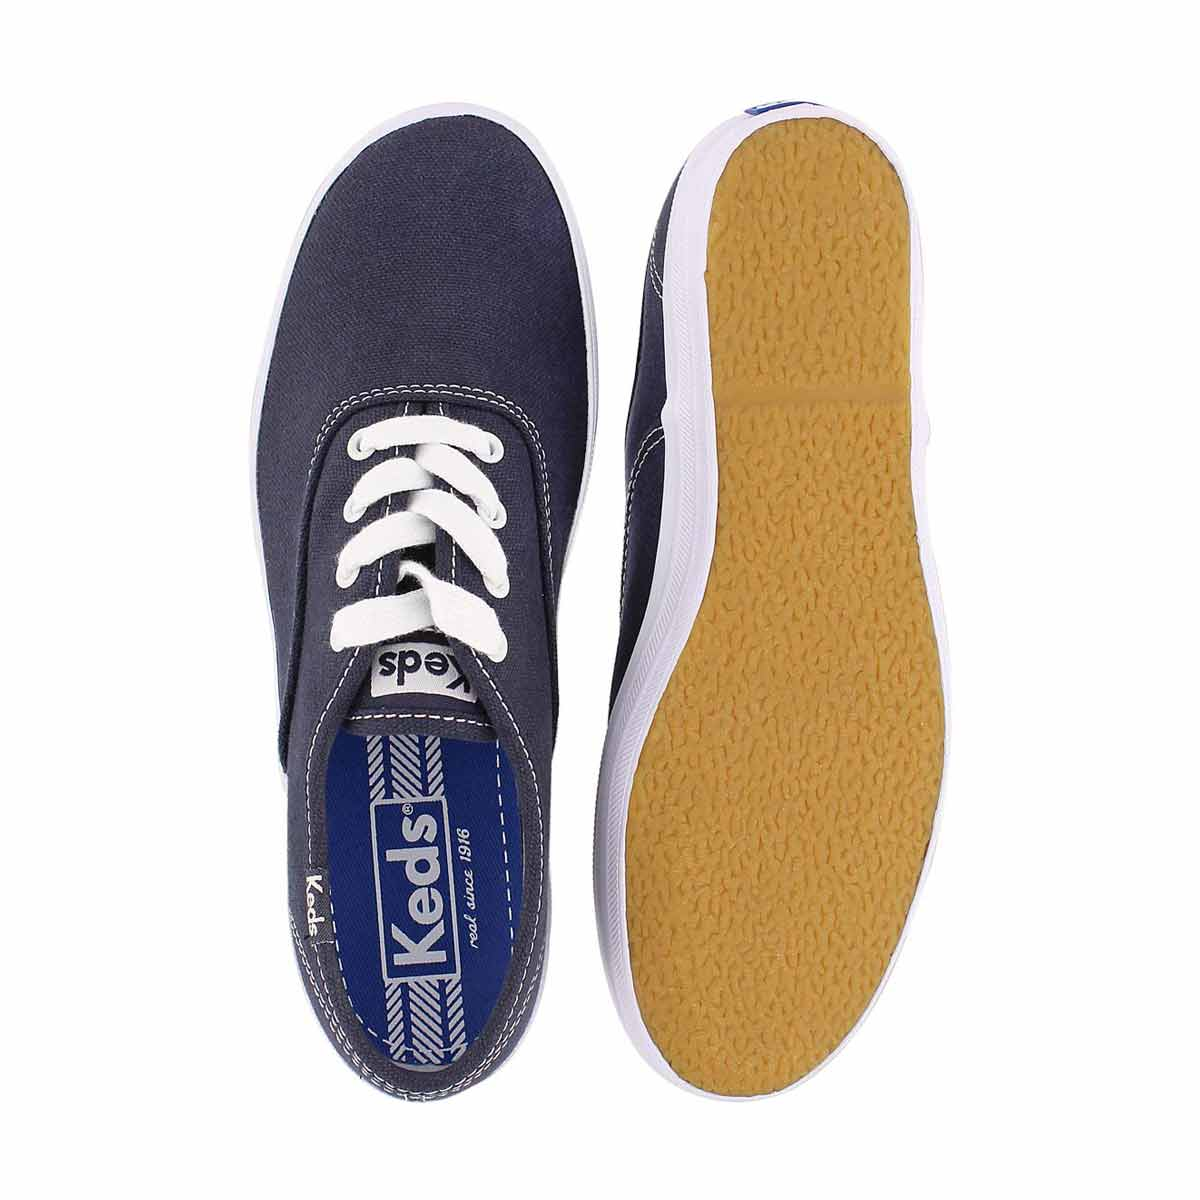 Kds Champion navy canvas sneaker